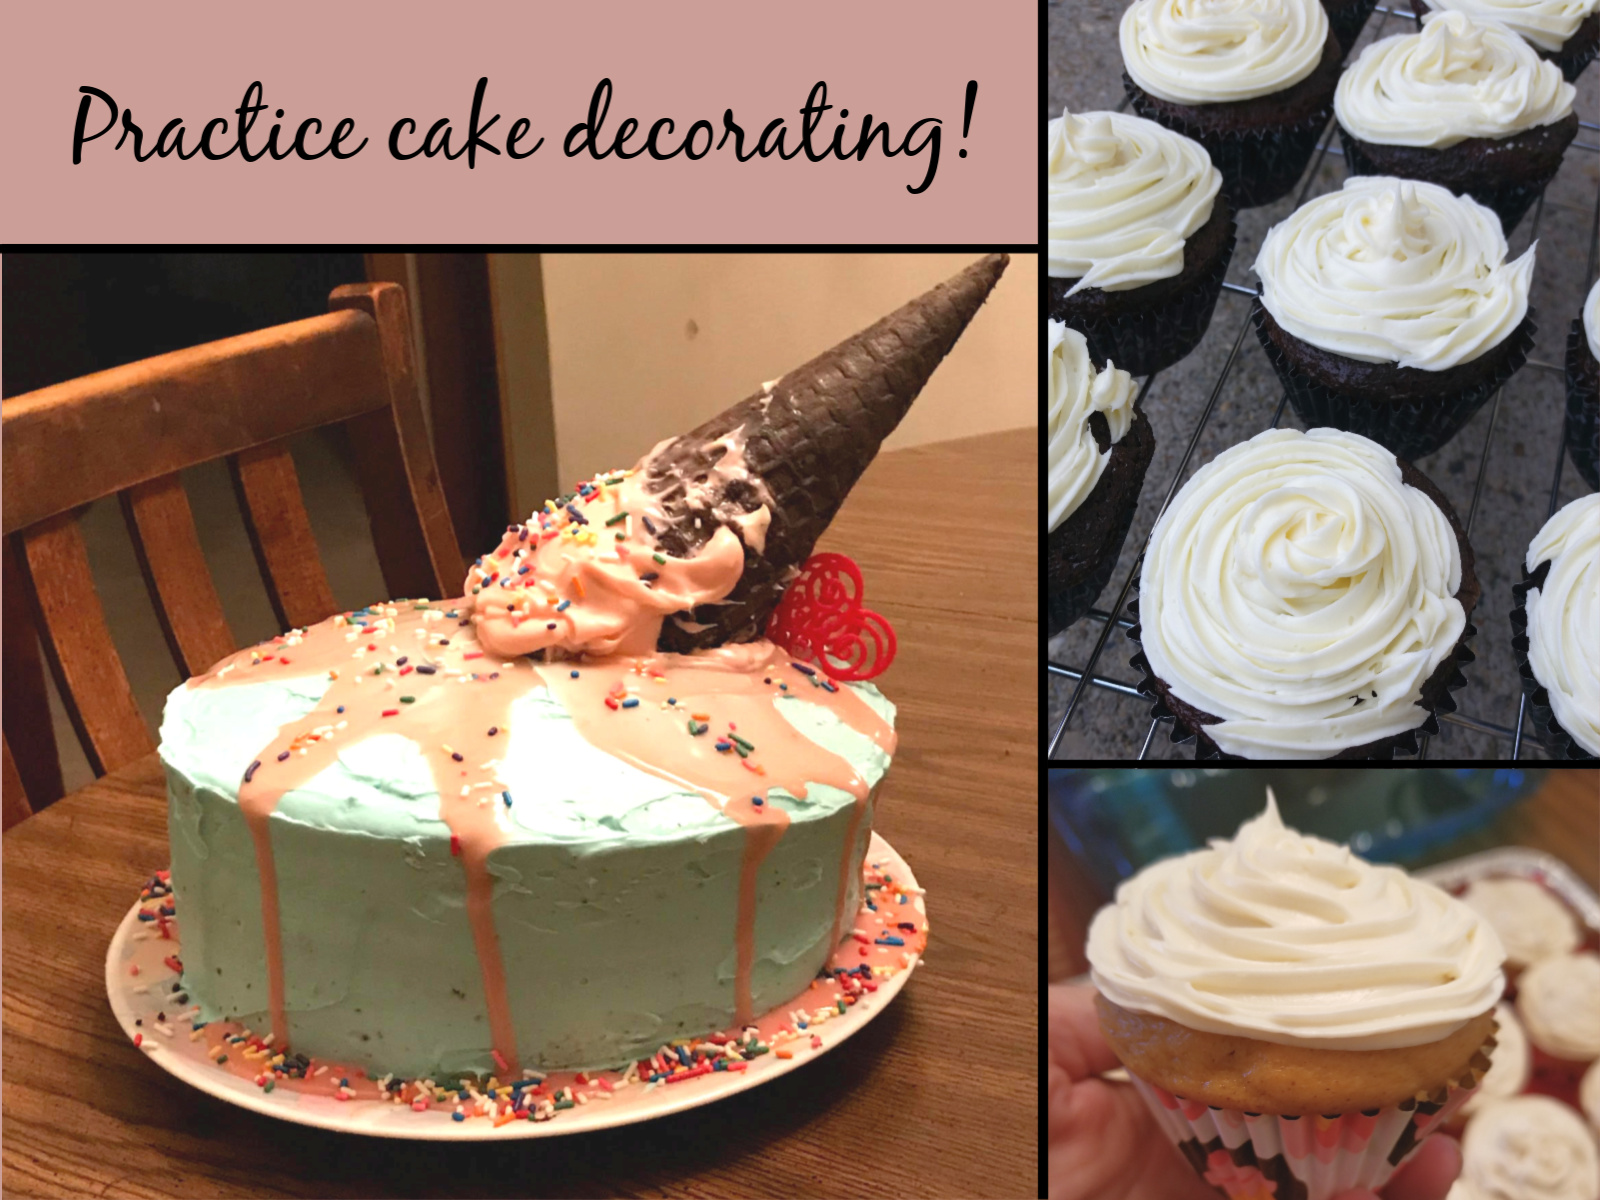 Images of cakes and cupcakes decorated at home